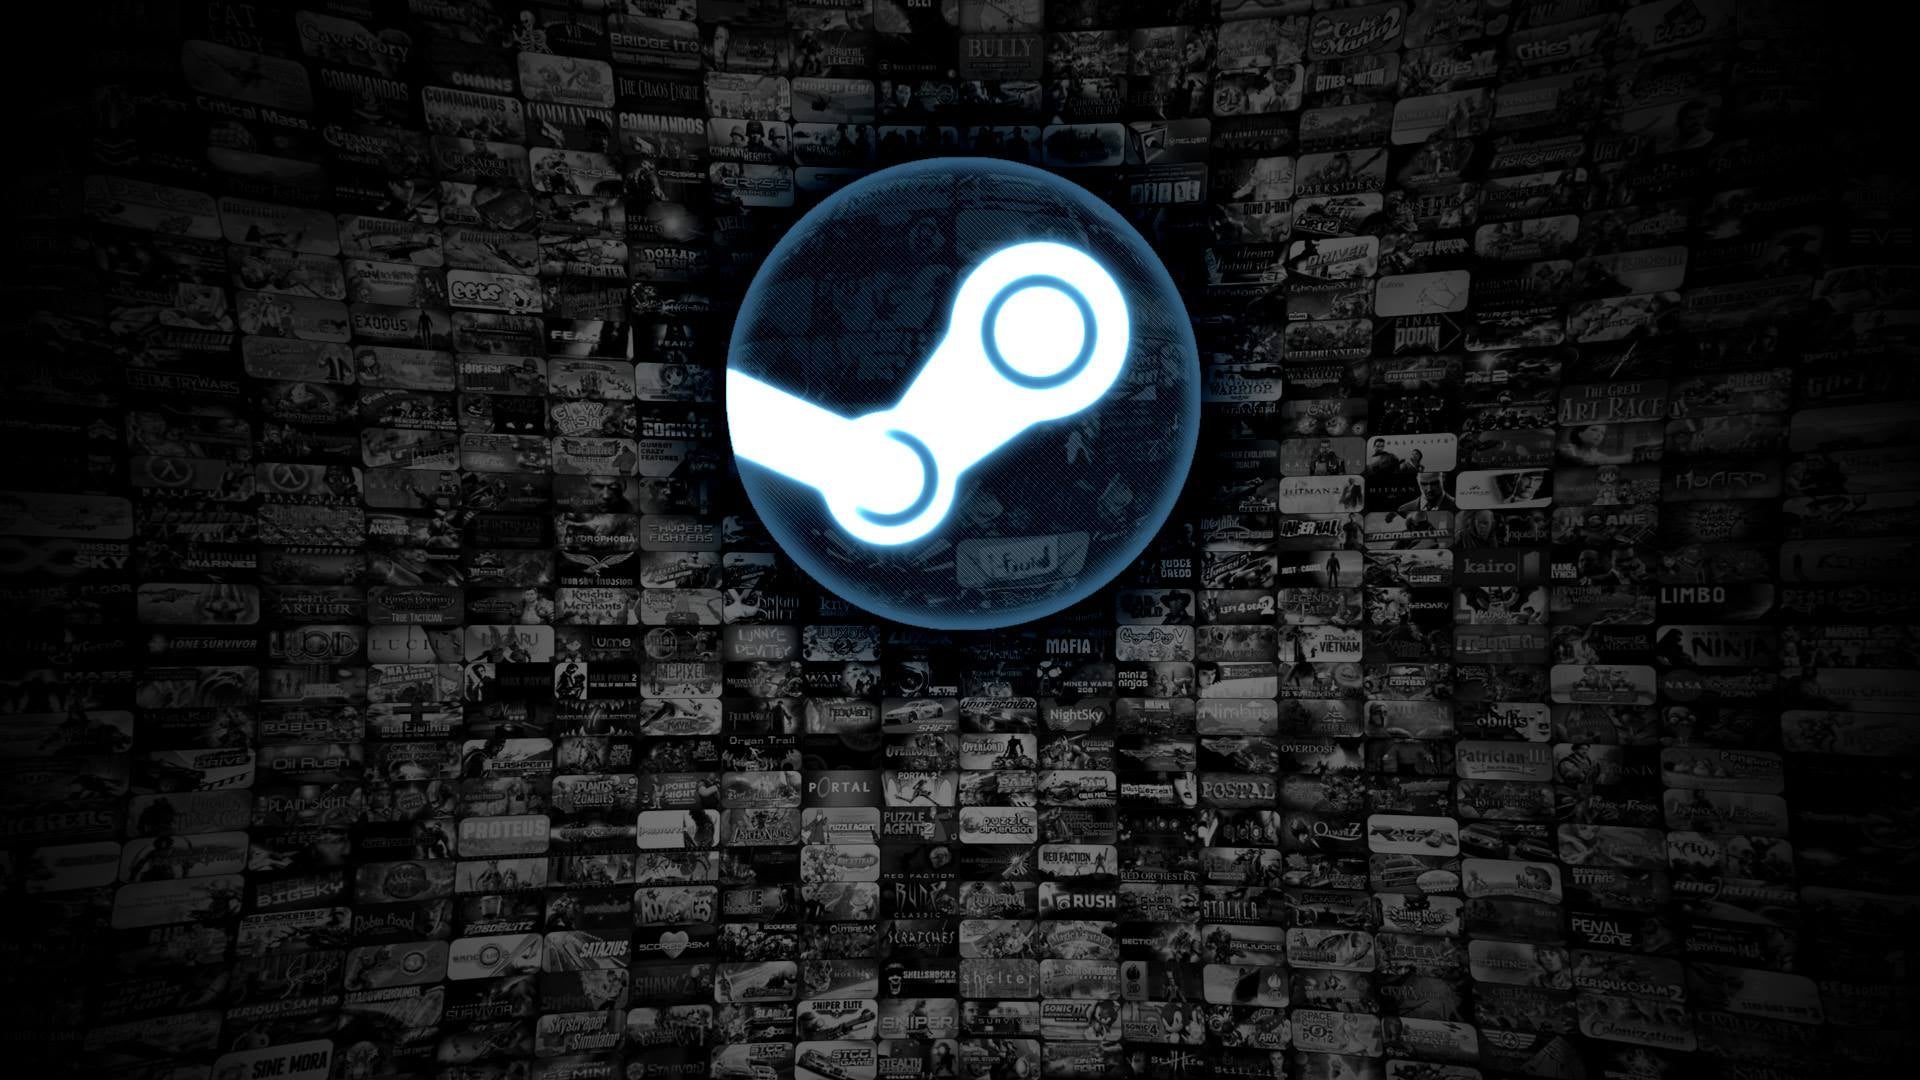 Valve Still Hasn't Told Steam Users About The Christmas Fiasco